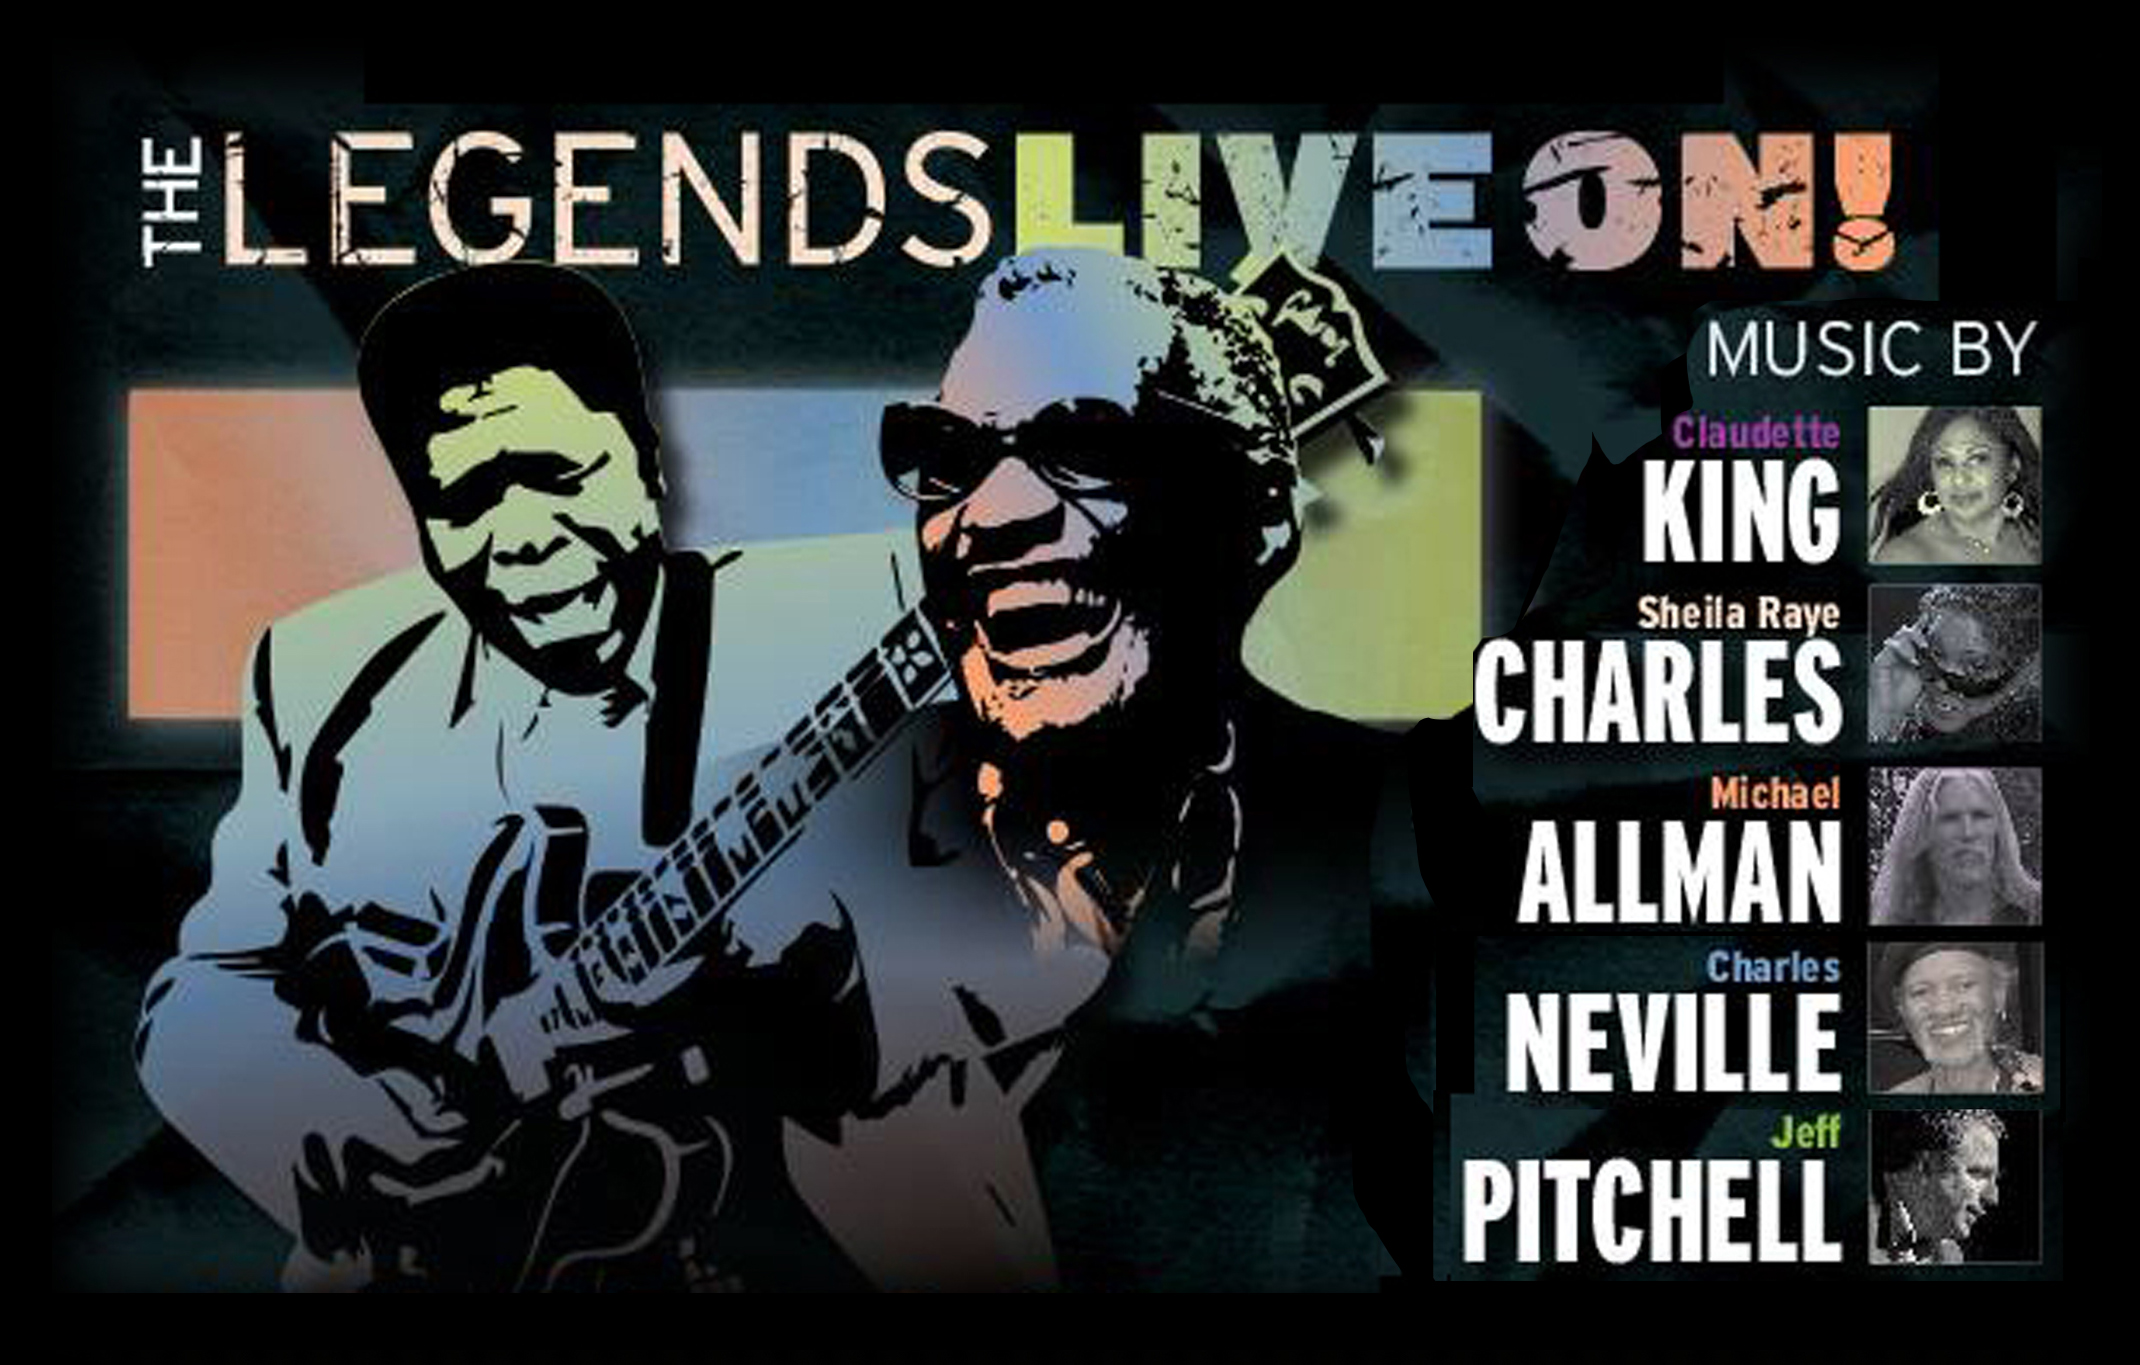 The Legends Live On! thumb